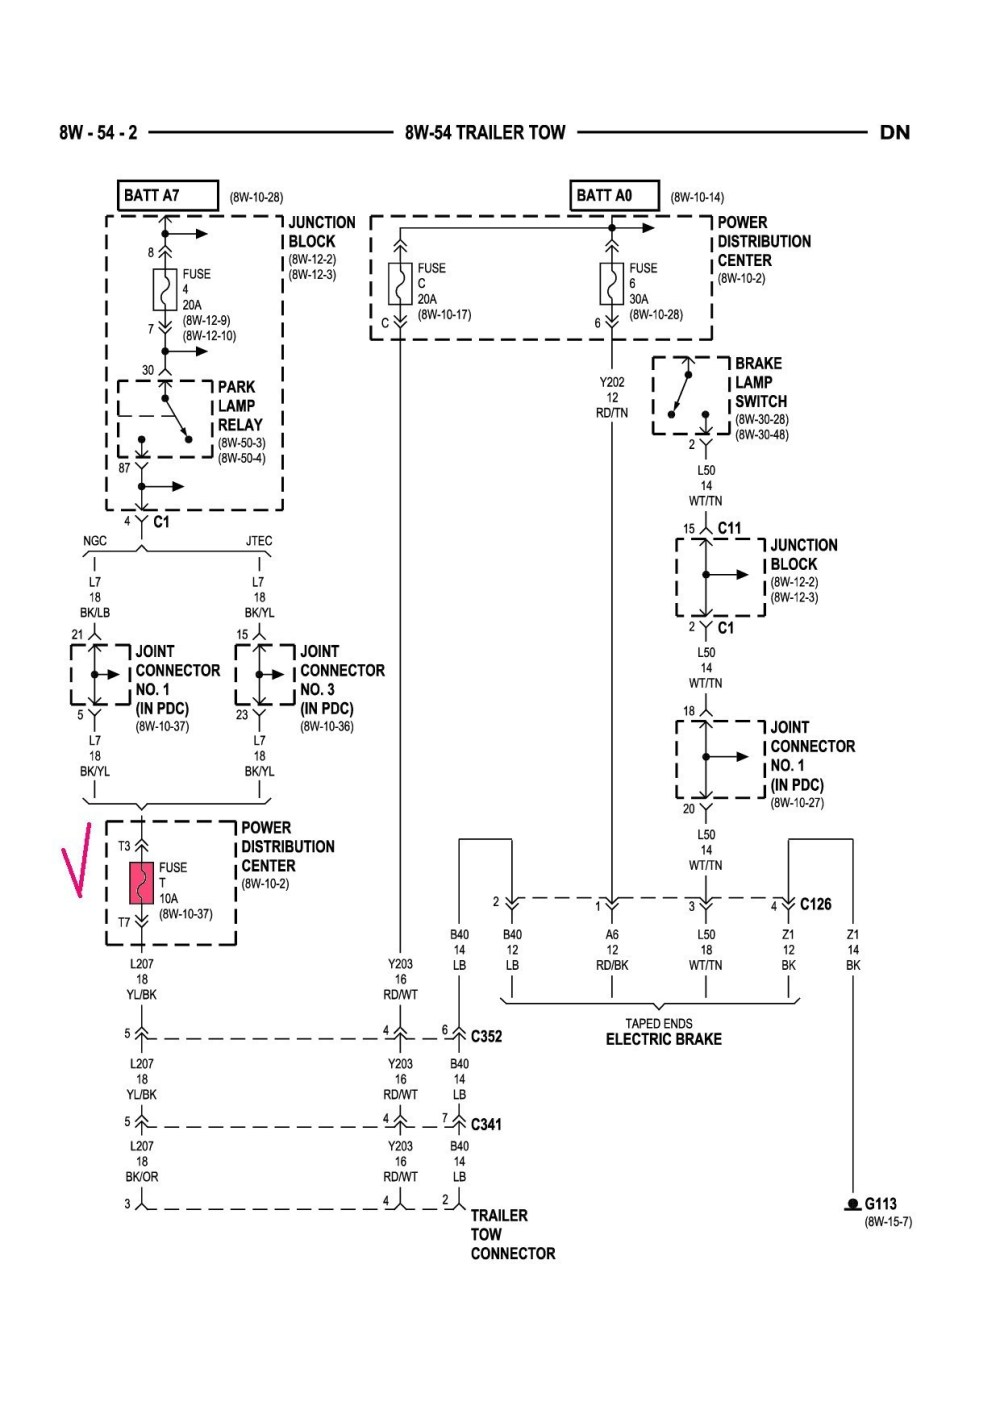 medium resolution of 2001 dodge dakota electrical schematic wiring diagram inside 2001 dakota wiring diagram wiring diagram meta 2001